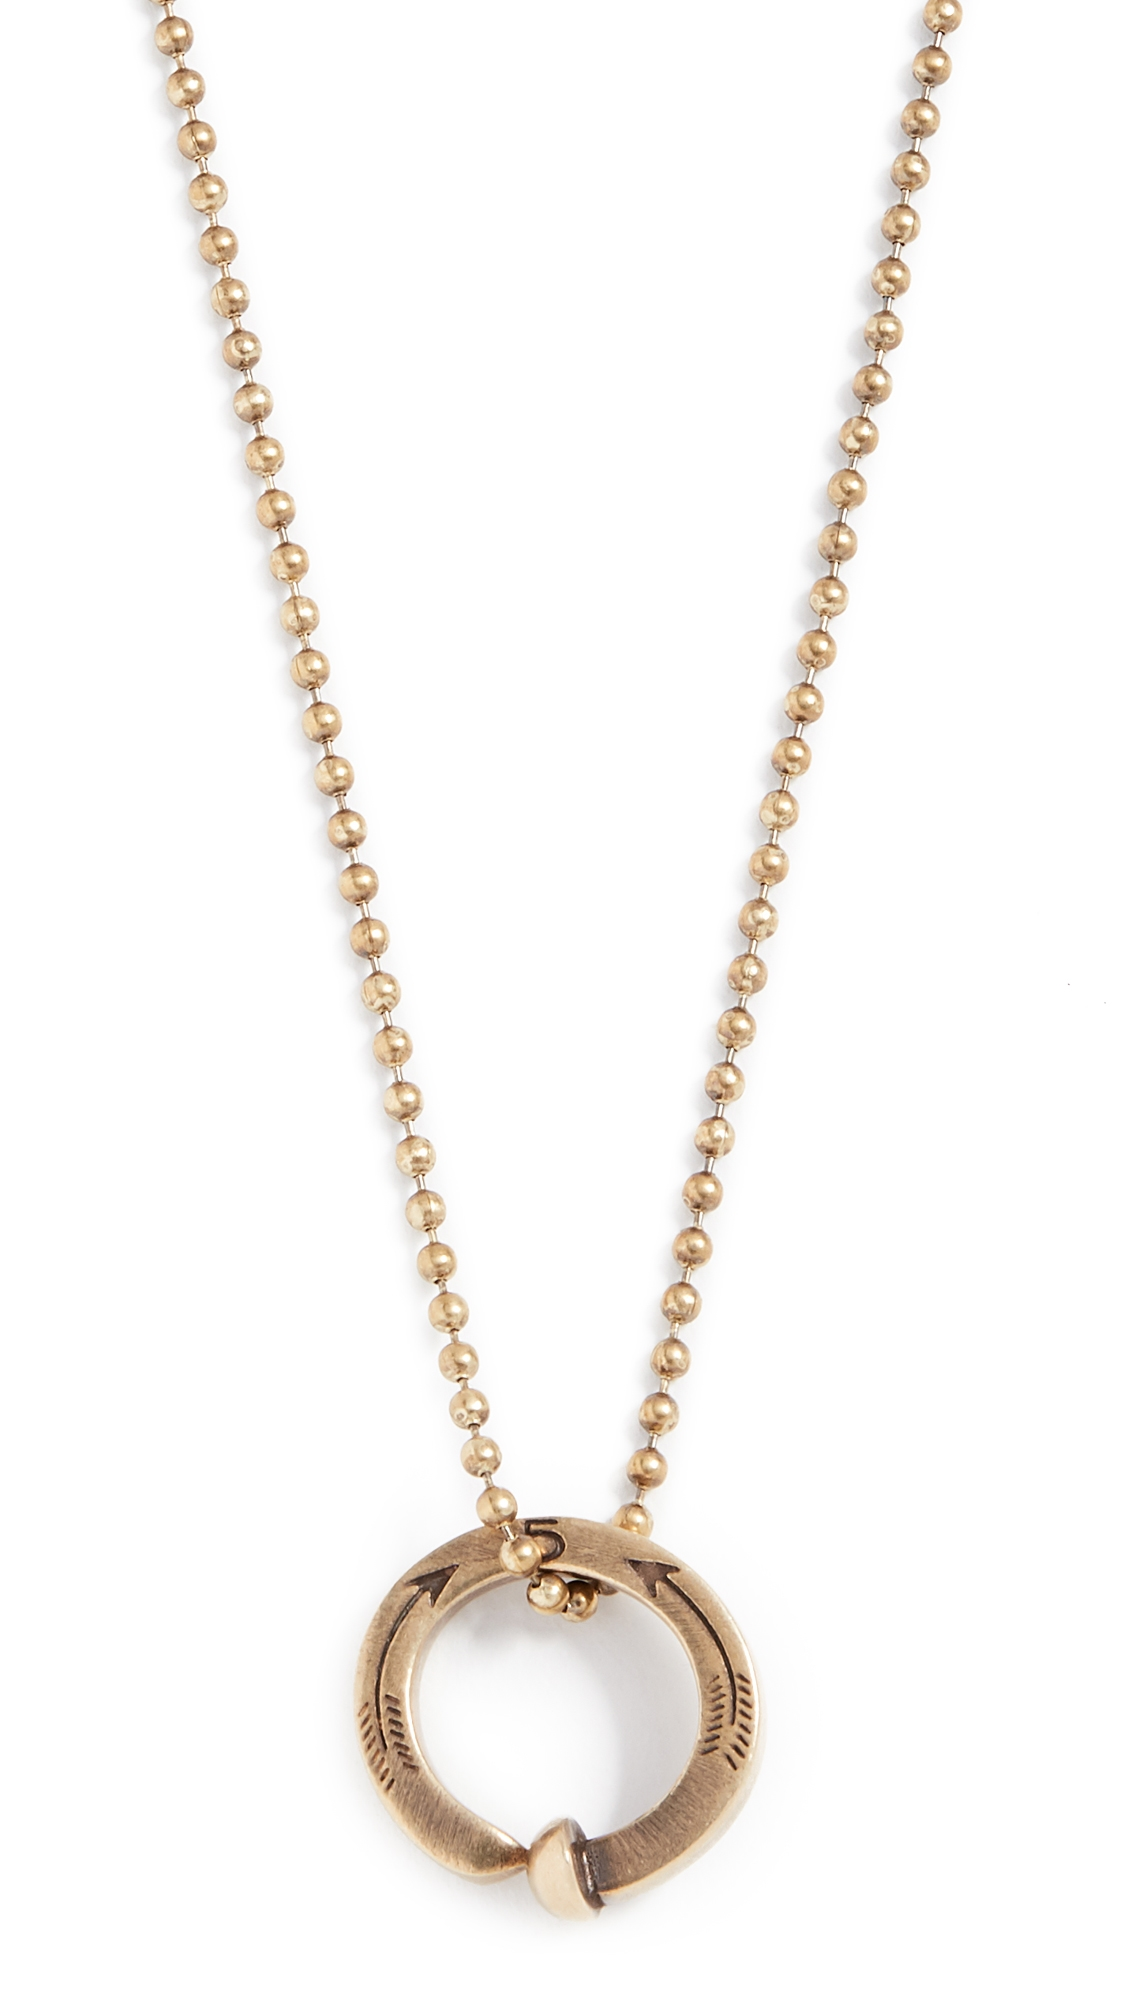 GILES & BROTHER Railroad Spike Ring Ball Chain Necklace in Antique Brass